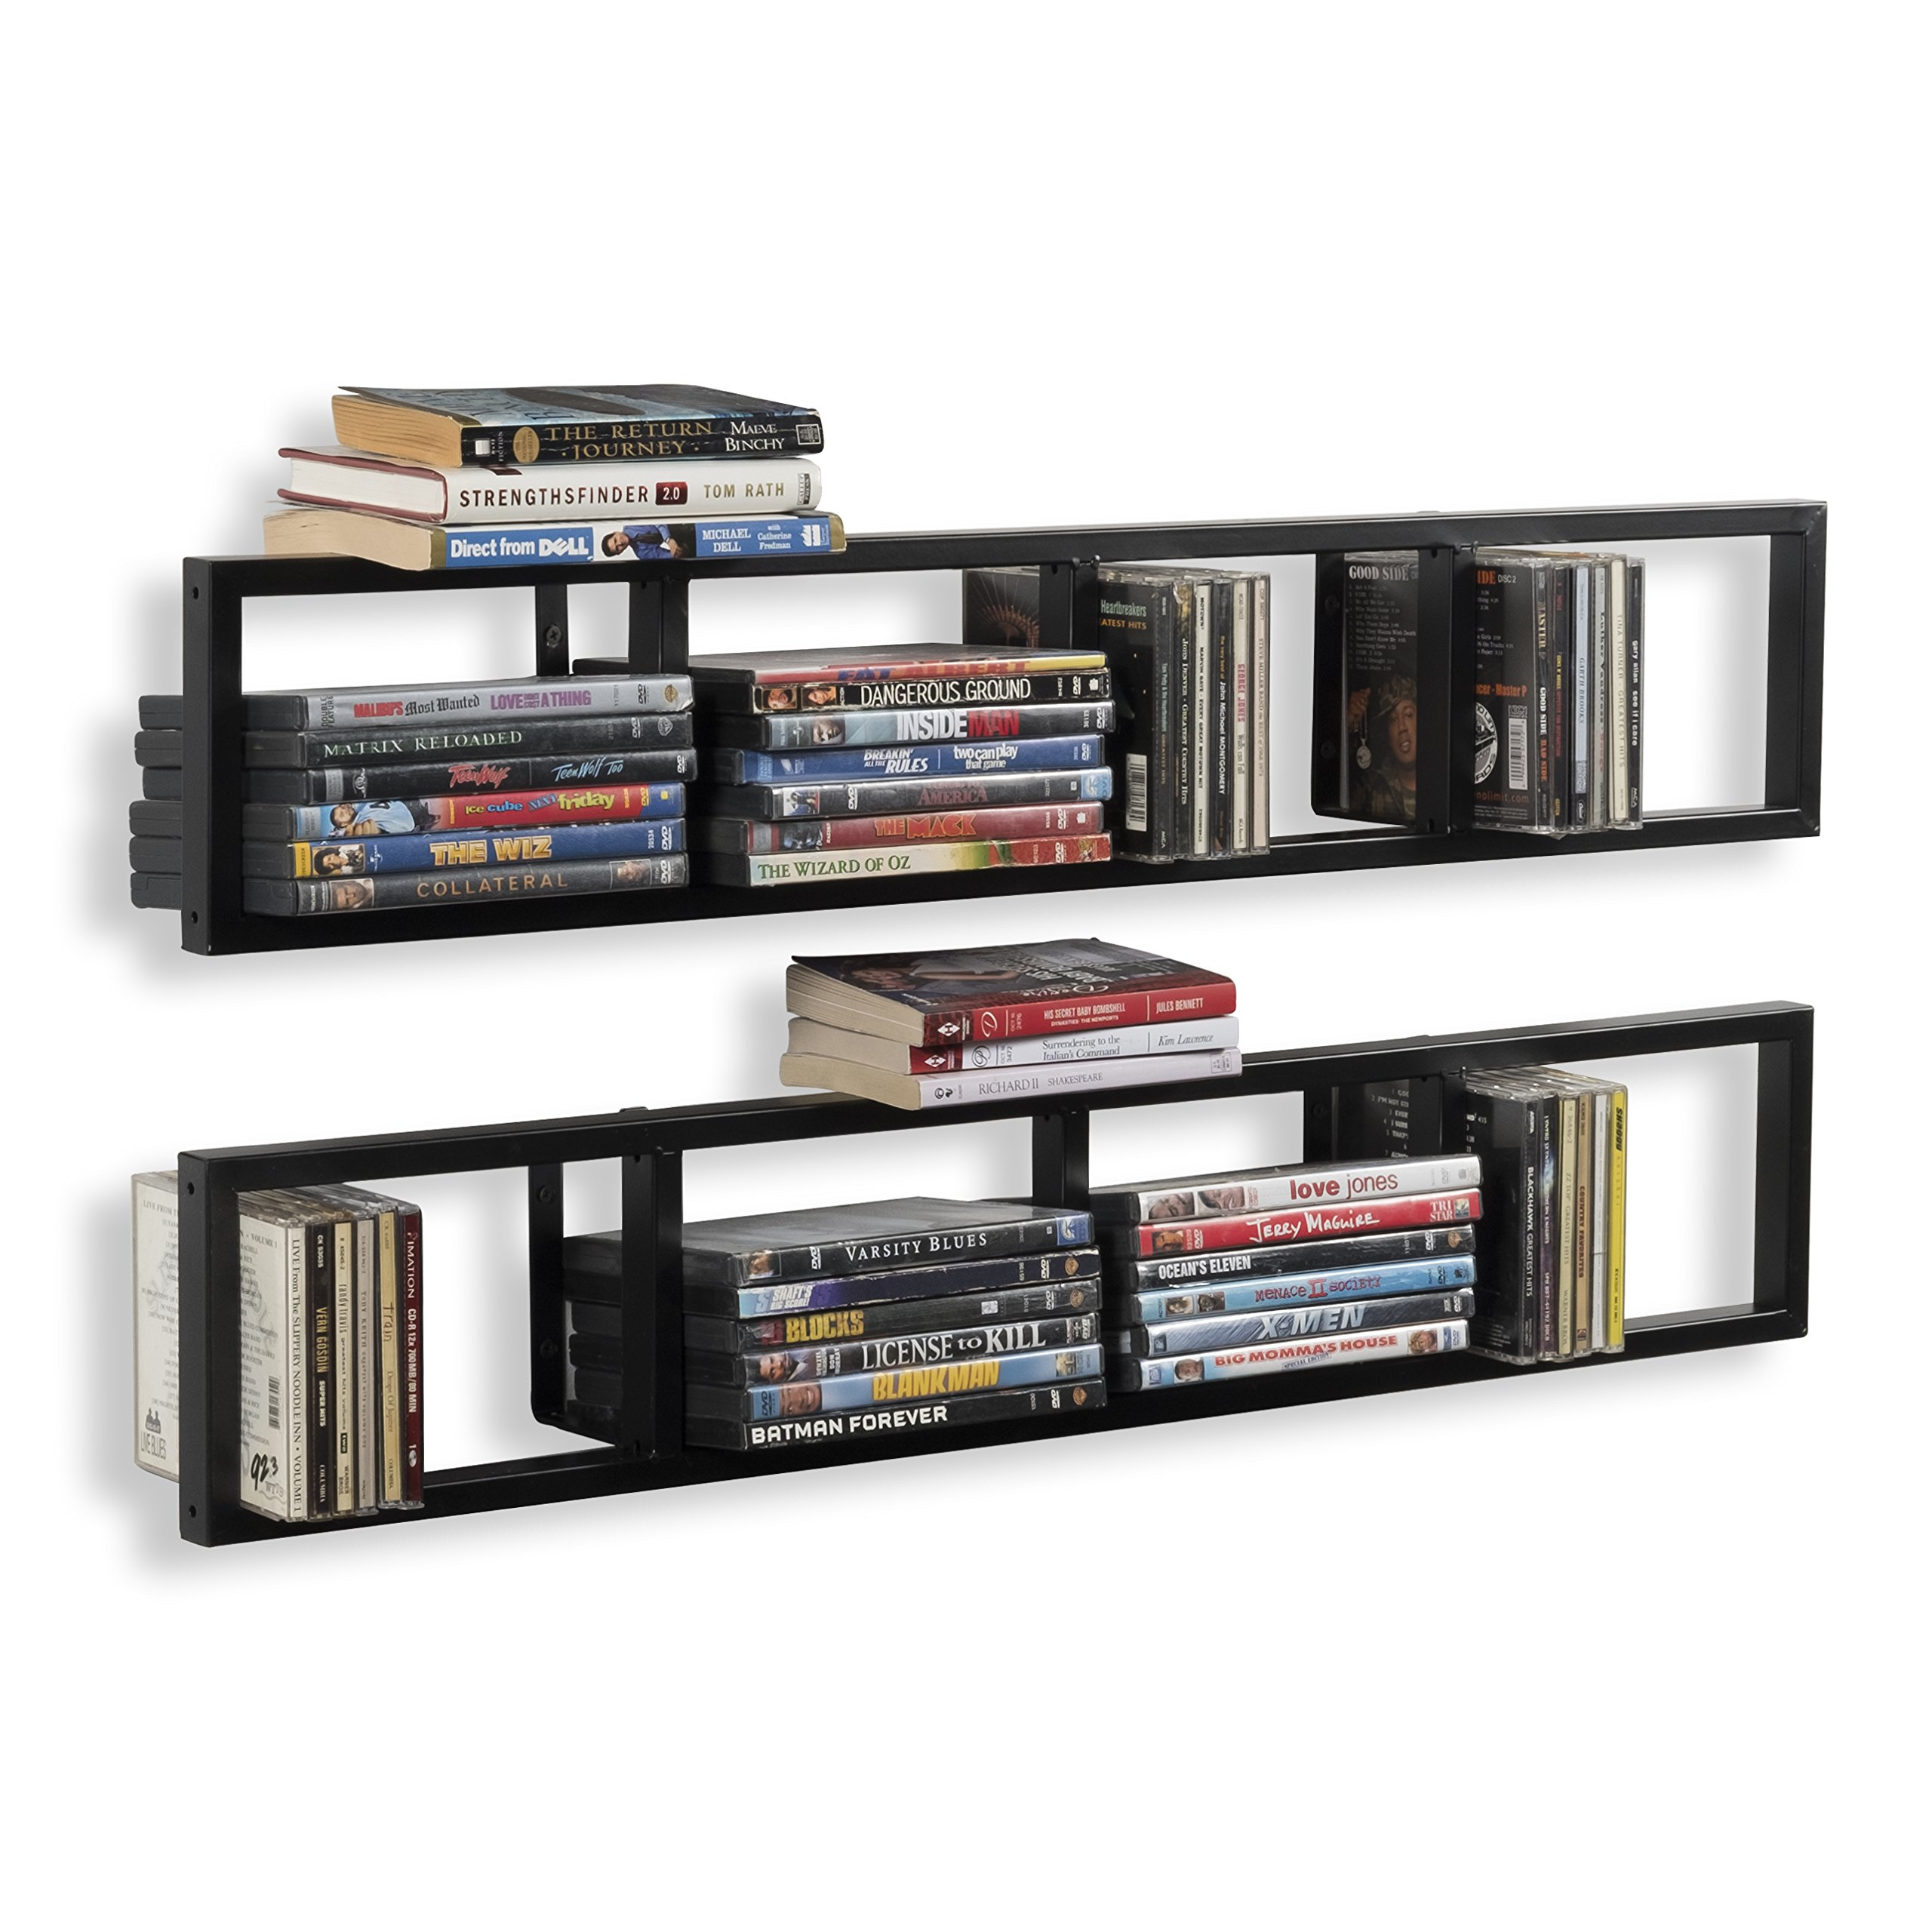 Wall Mount 34 Inch Media Storage Rack CD DVD Organizer Metal Floating Shelf Set of 2 Black  sc 1 st  eBay & Wall Mount 34 Inch Media Storage Rack CD DVD Organizer Metal ...